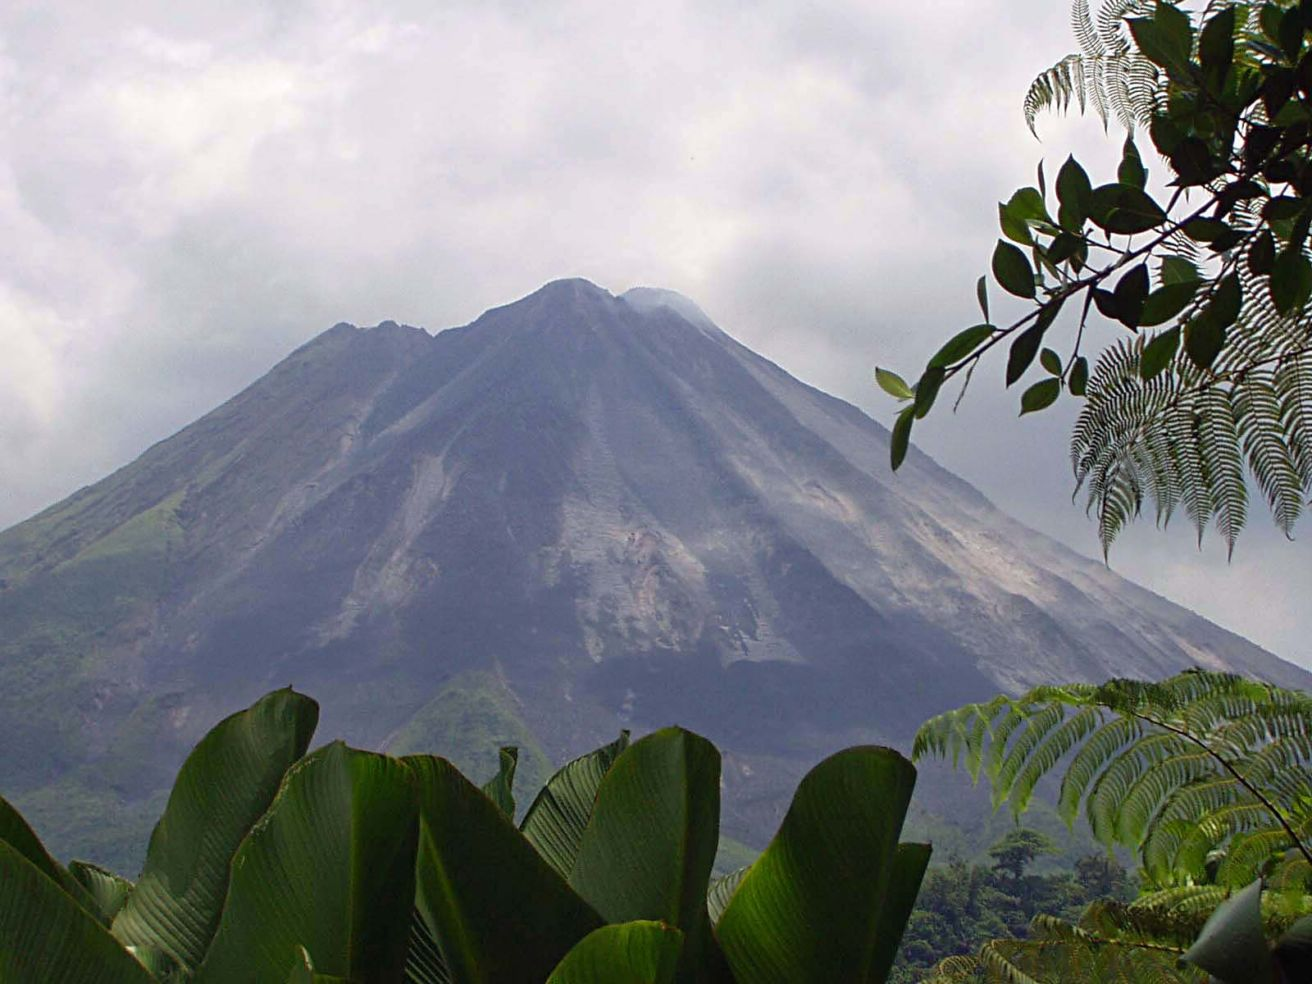 Smoking arenal volcano